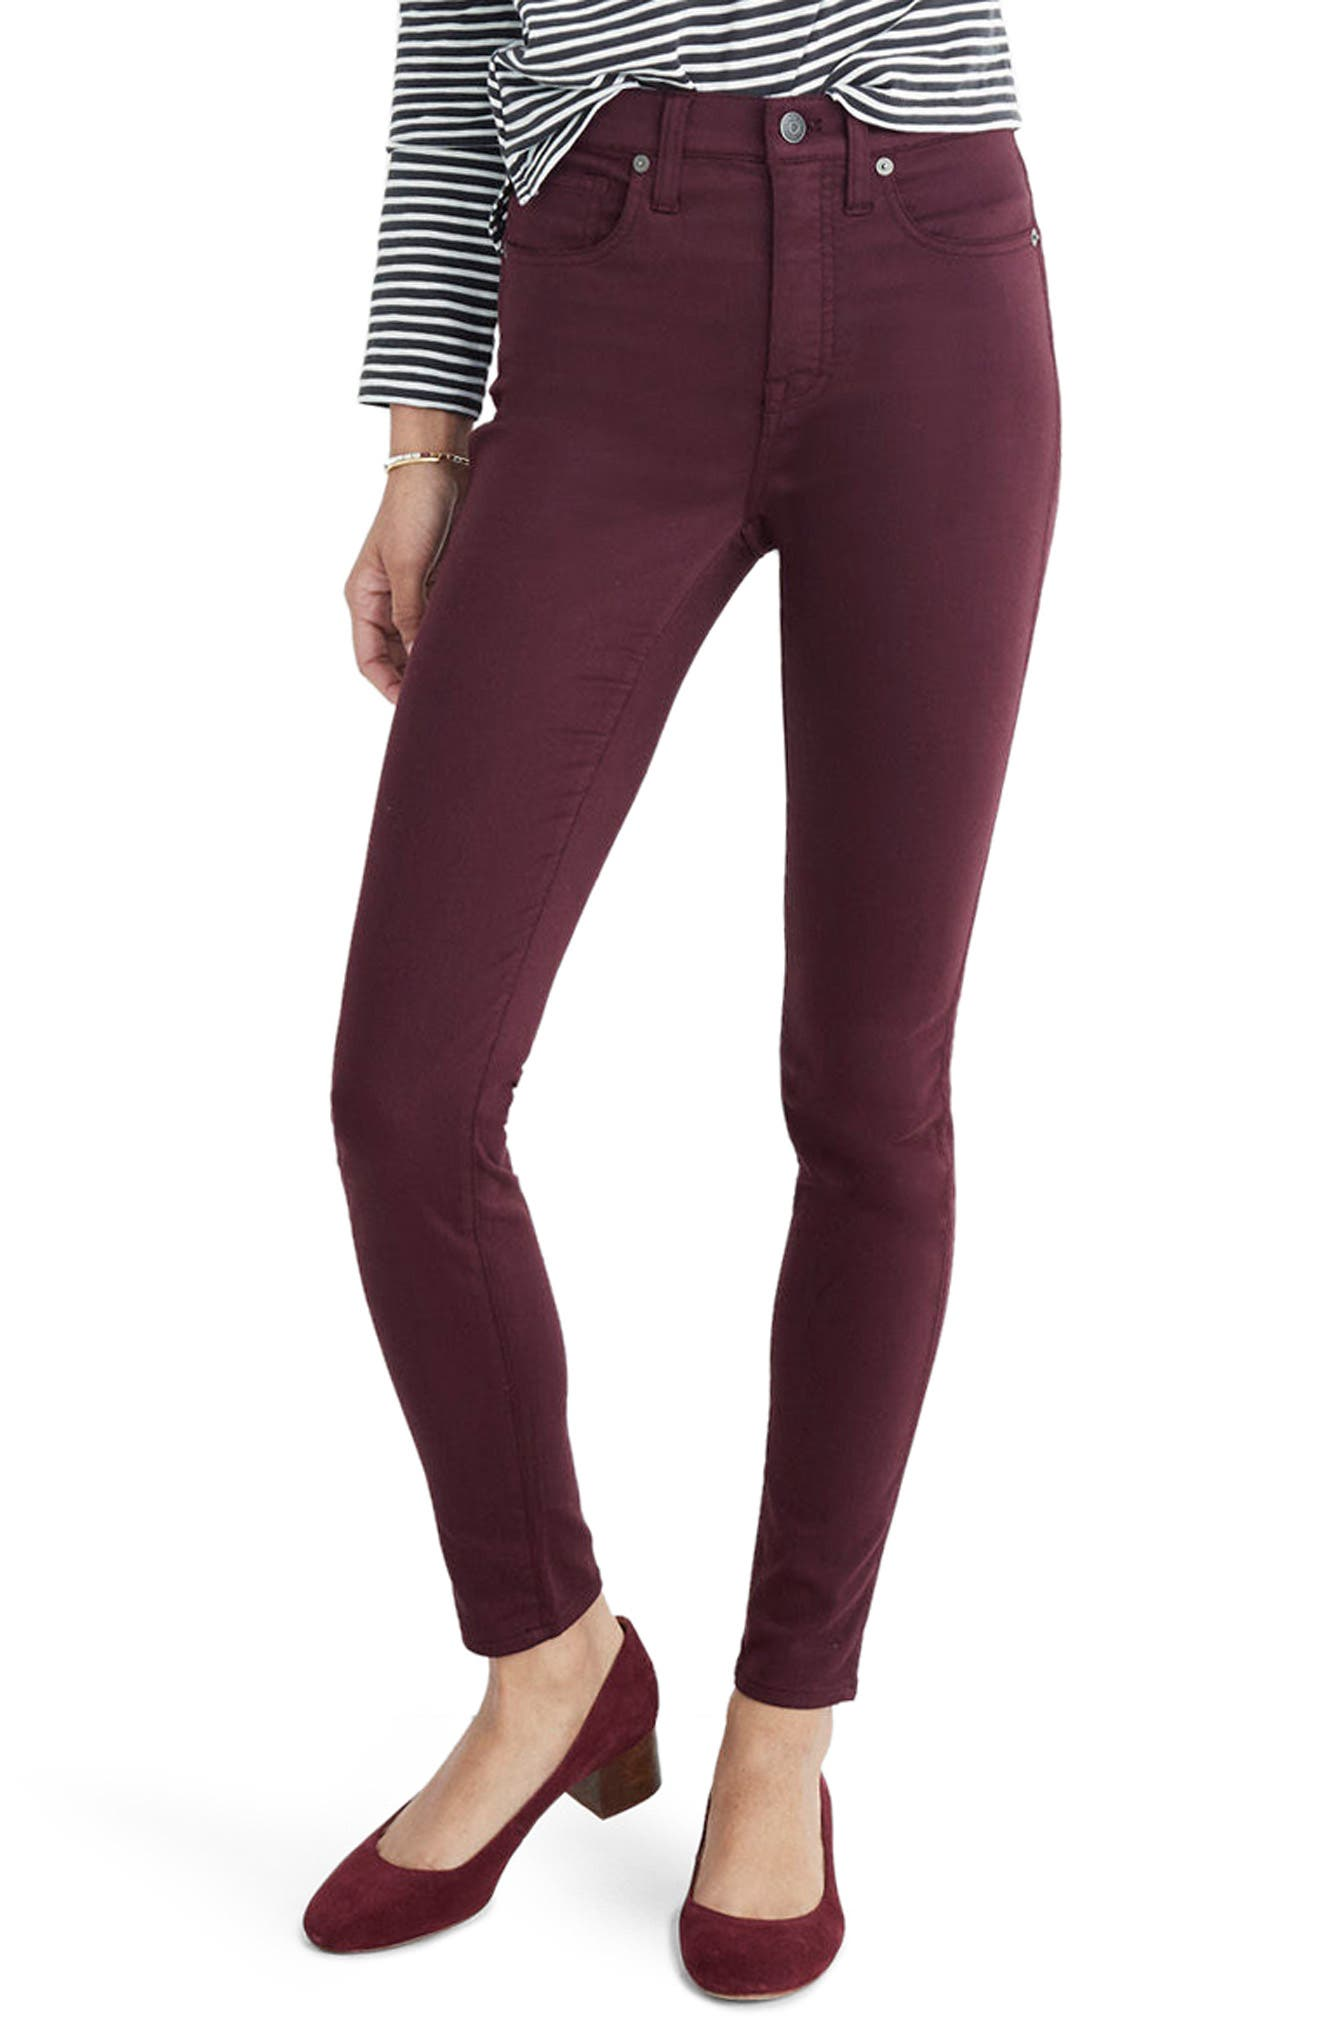 10-Inch High Waist Skinny Sateen Jeans,                         Main,                         color, 500